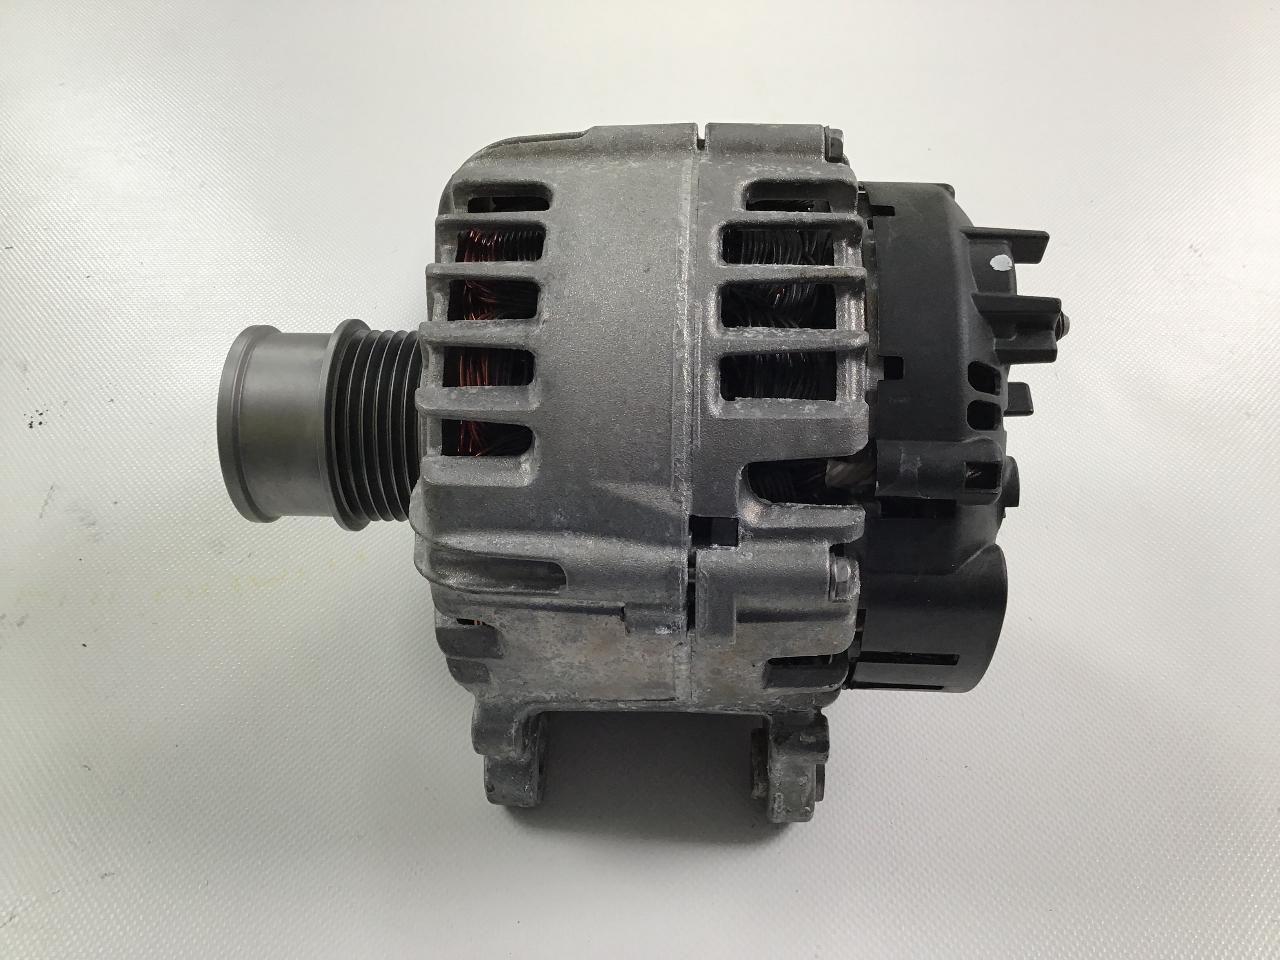 Audi 80 90 100 200 1.4 1.6 1.8 1978 1979-1994 alternator 12 month warranty